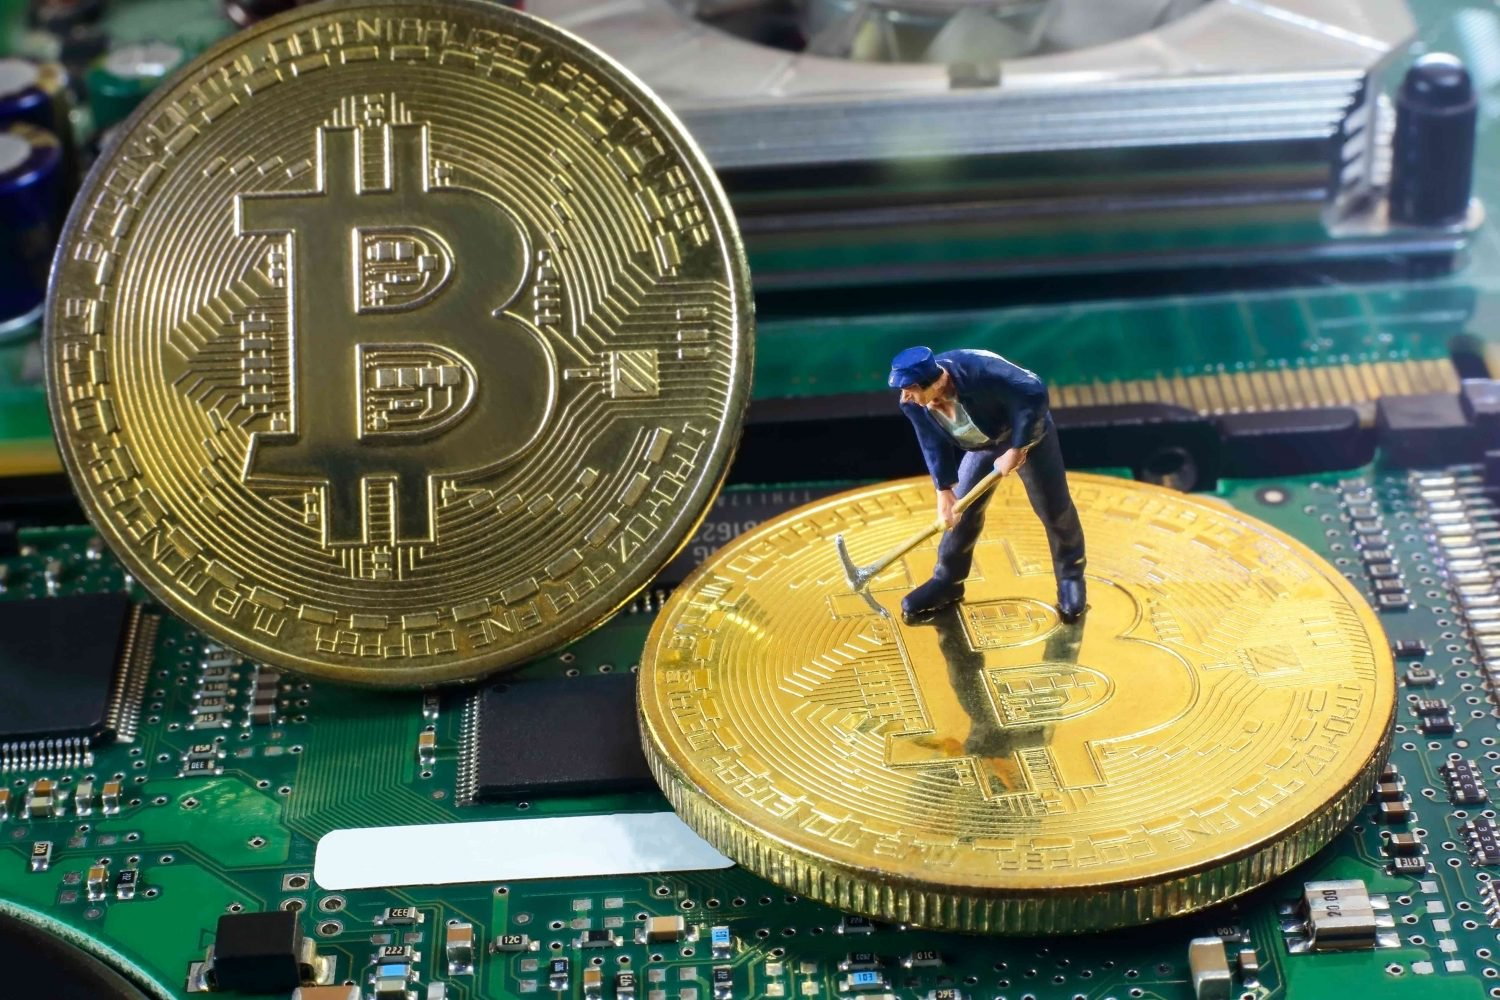 Tips To Get The Most From Mining Monero